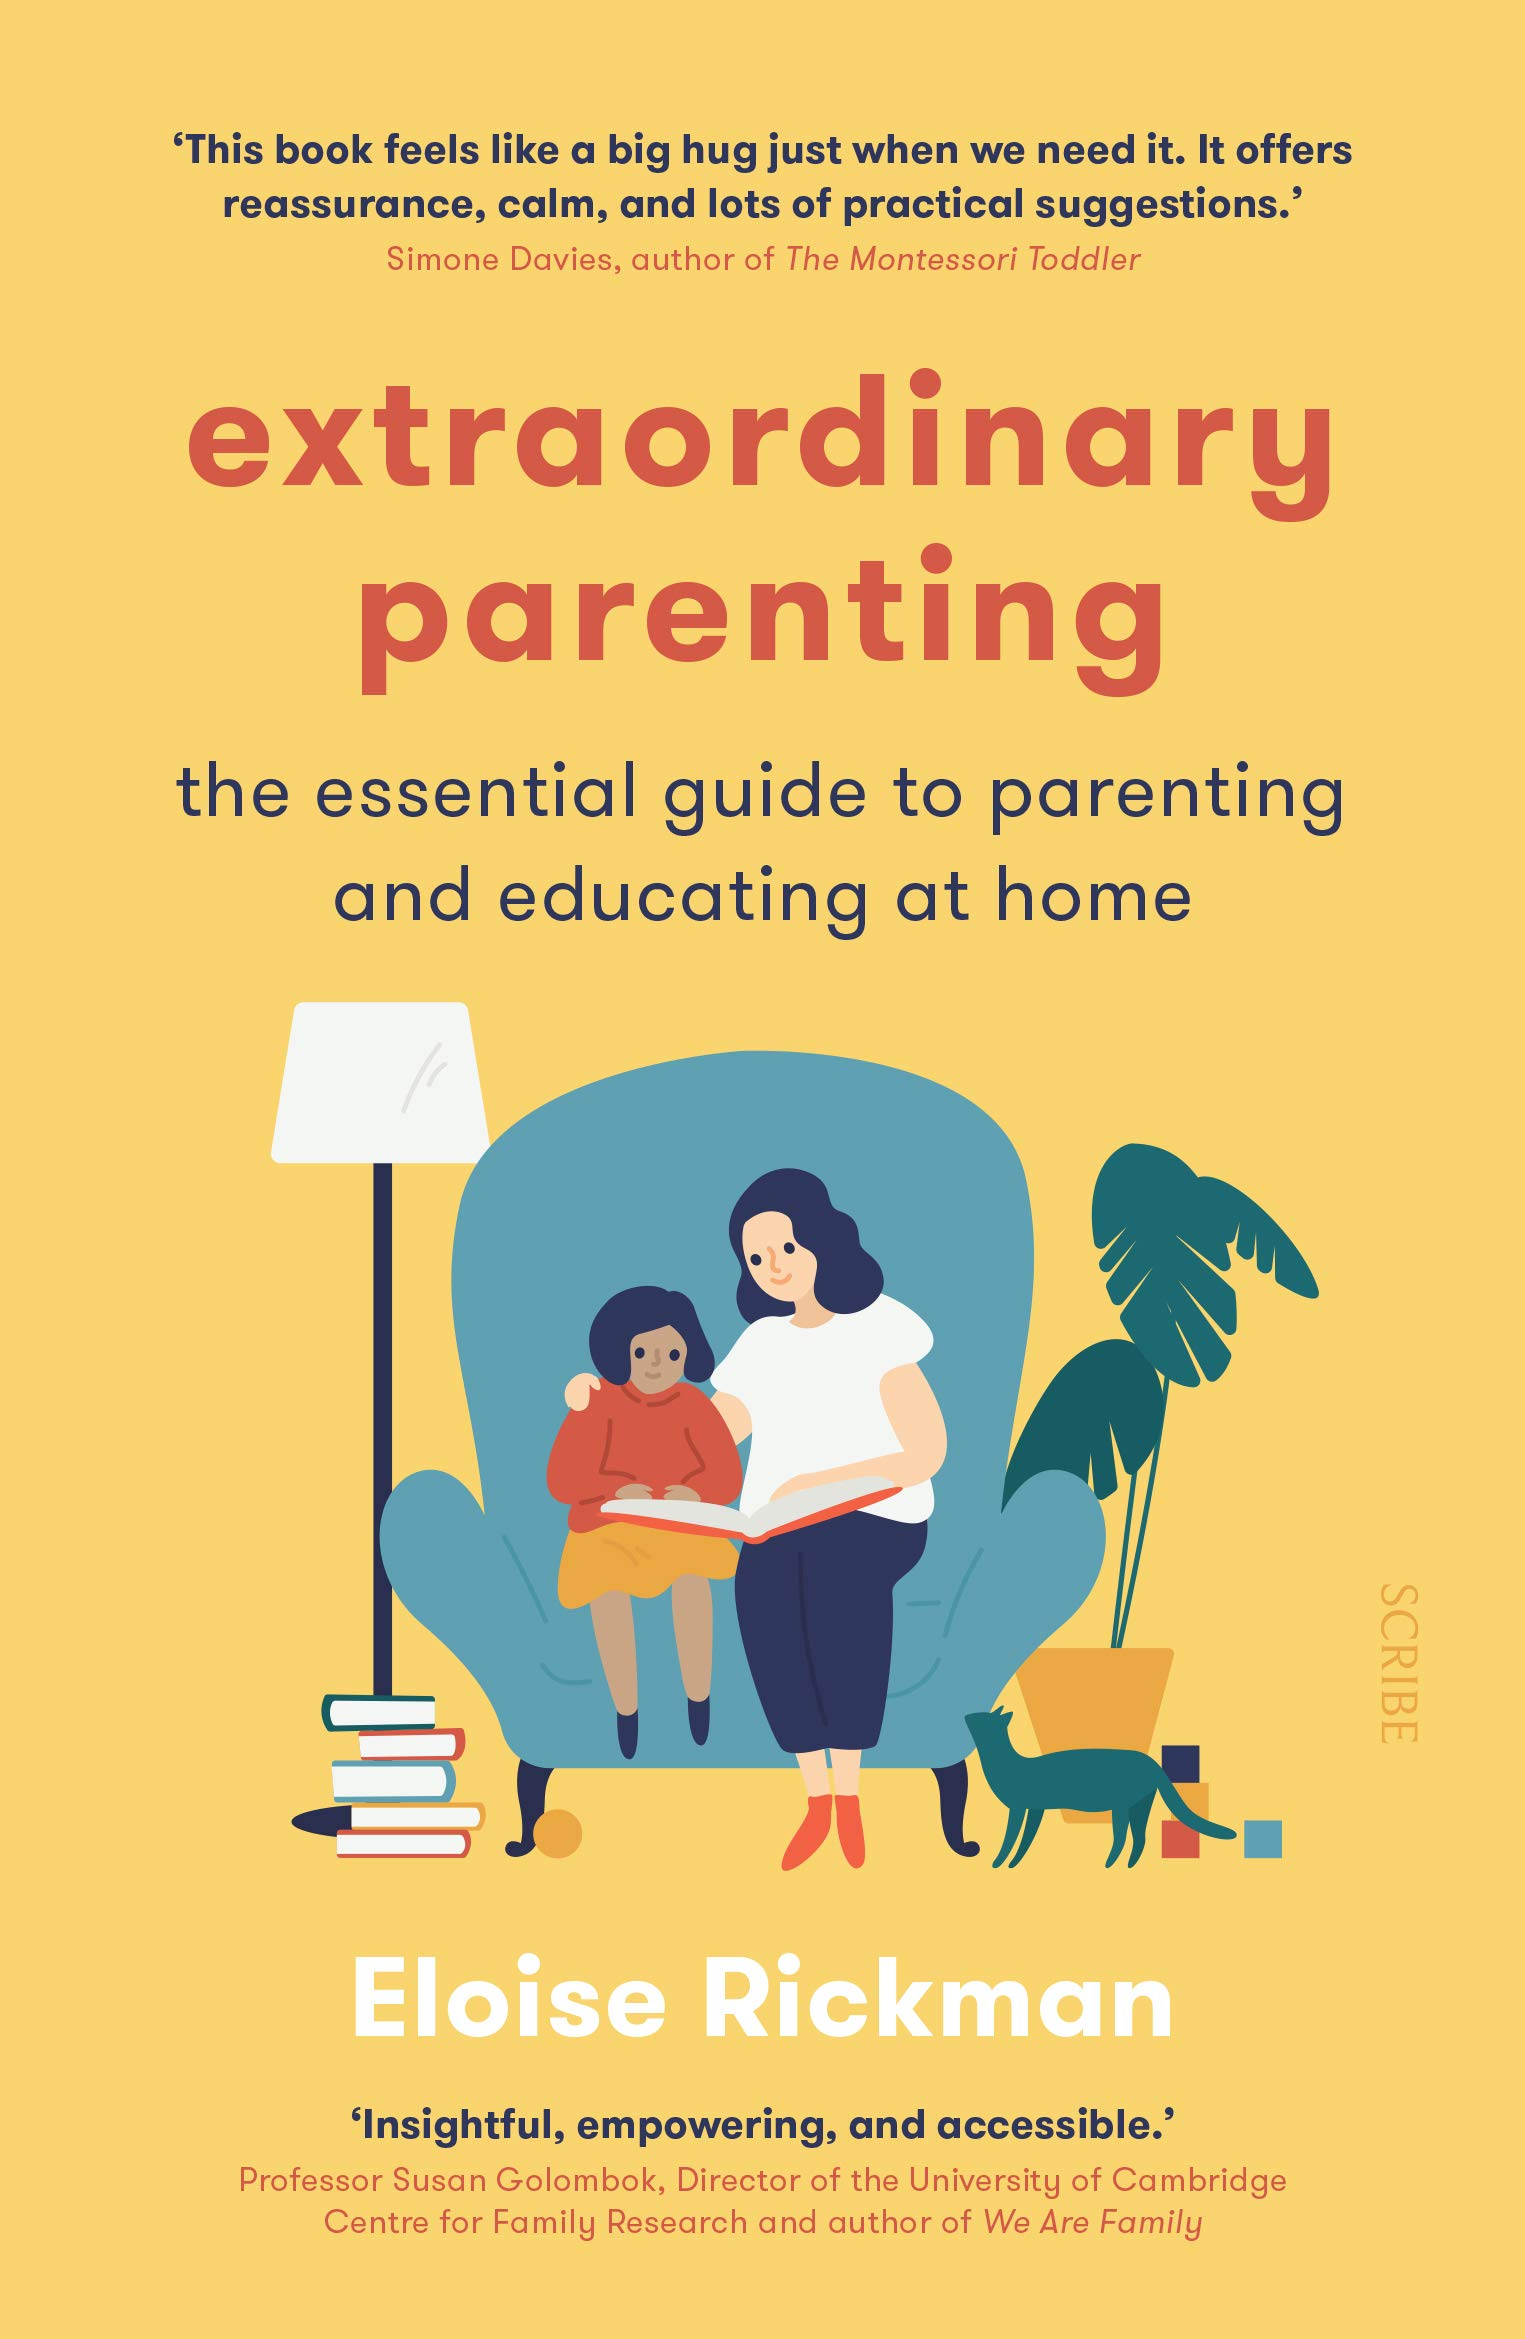 Extraordinary Parenting The Essential Guide To Parenting And Educating At Home Amazon Co Uk Rickman Eloise 9781913348540 Books